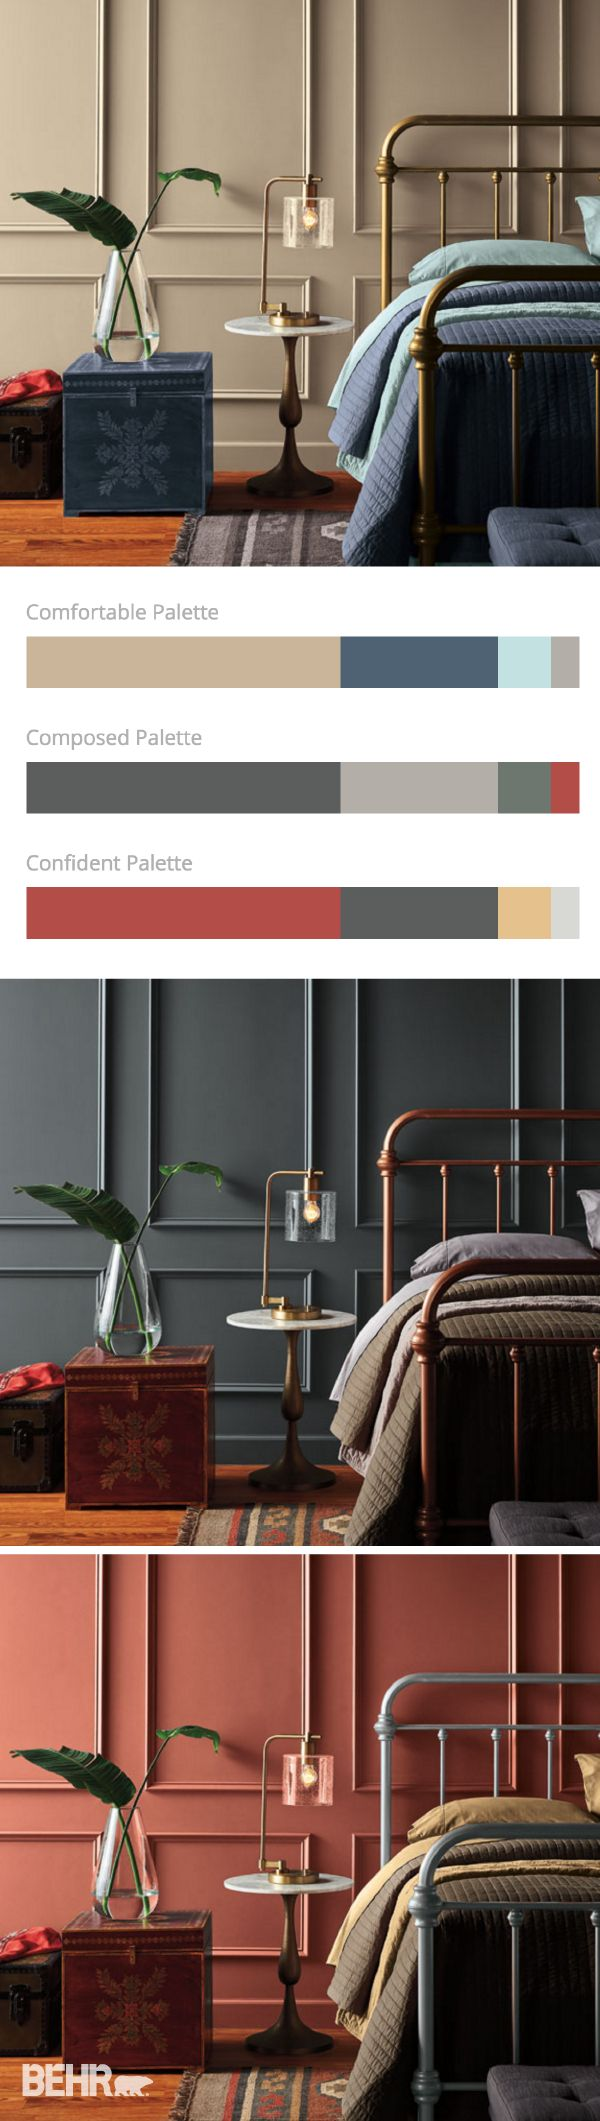 81 best behr 2017 color trends images on pinterest color trends learn about behr s 2017 color trends and see images that will help inspire your interior design projects this year